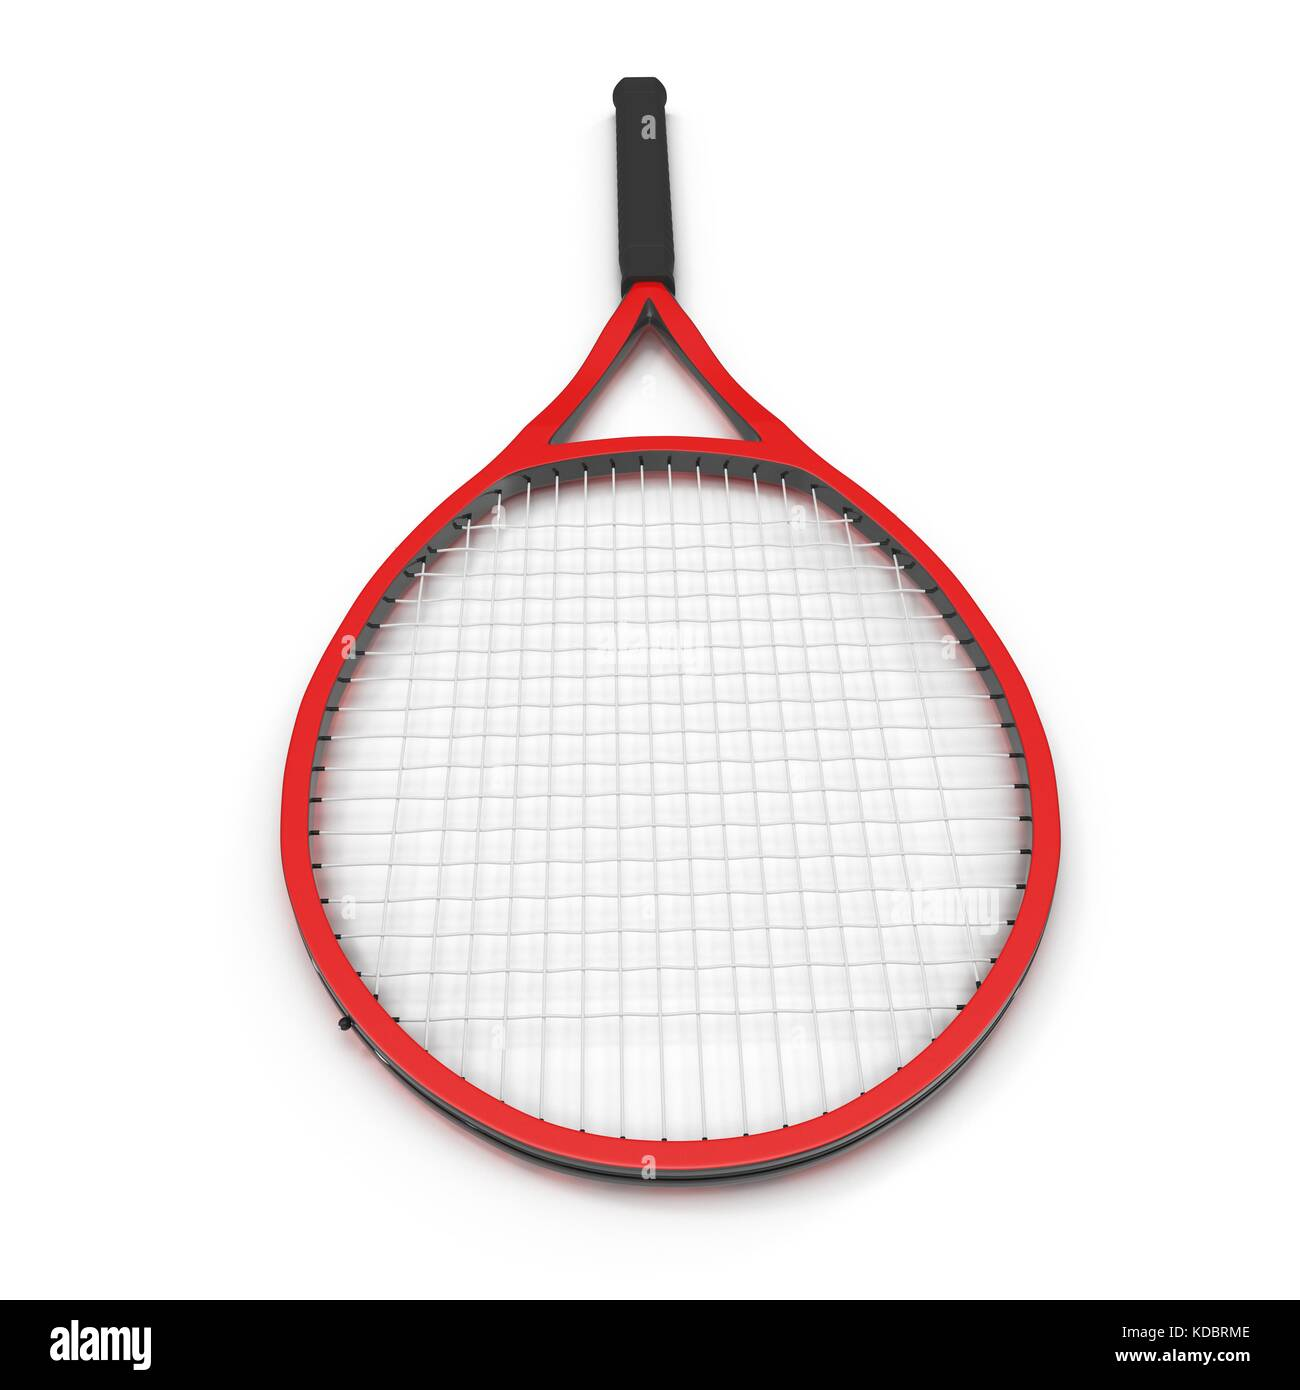 Admirable Red Tennis Racket Isolated White Background Stock Photo 163143918 Wiring Cloud Intapioscosaoduqqnet